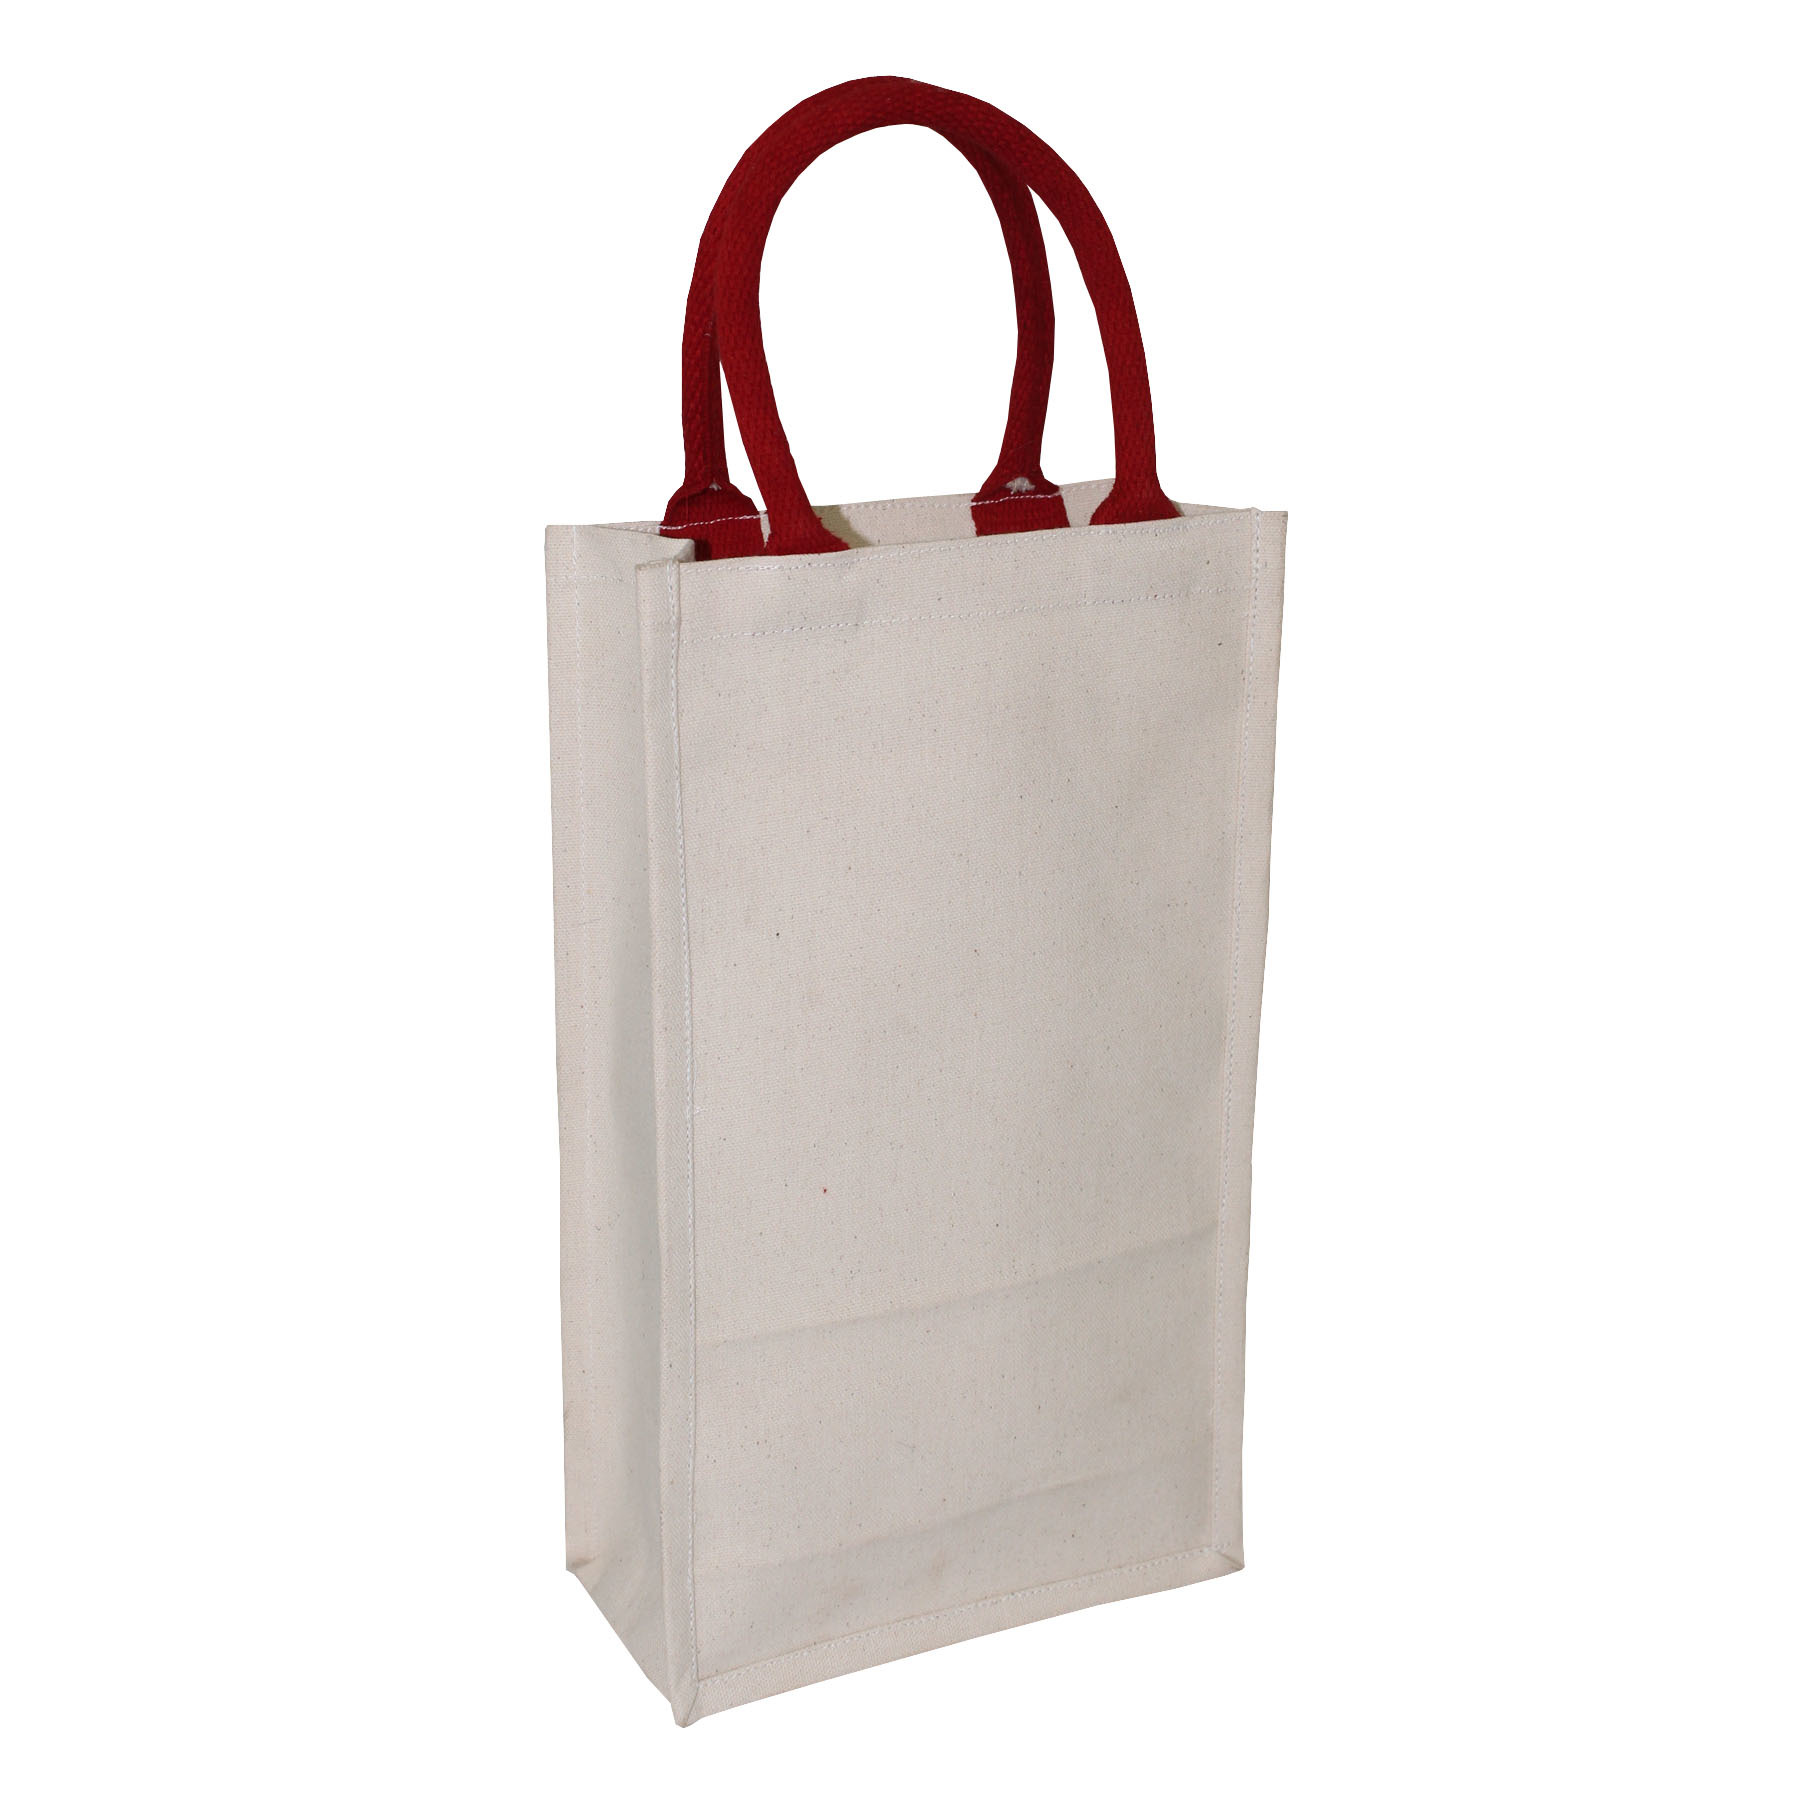 10 Oz Pp Laminated Natural Canvas Tote Bag With Rope Handle